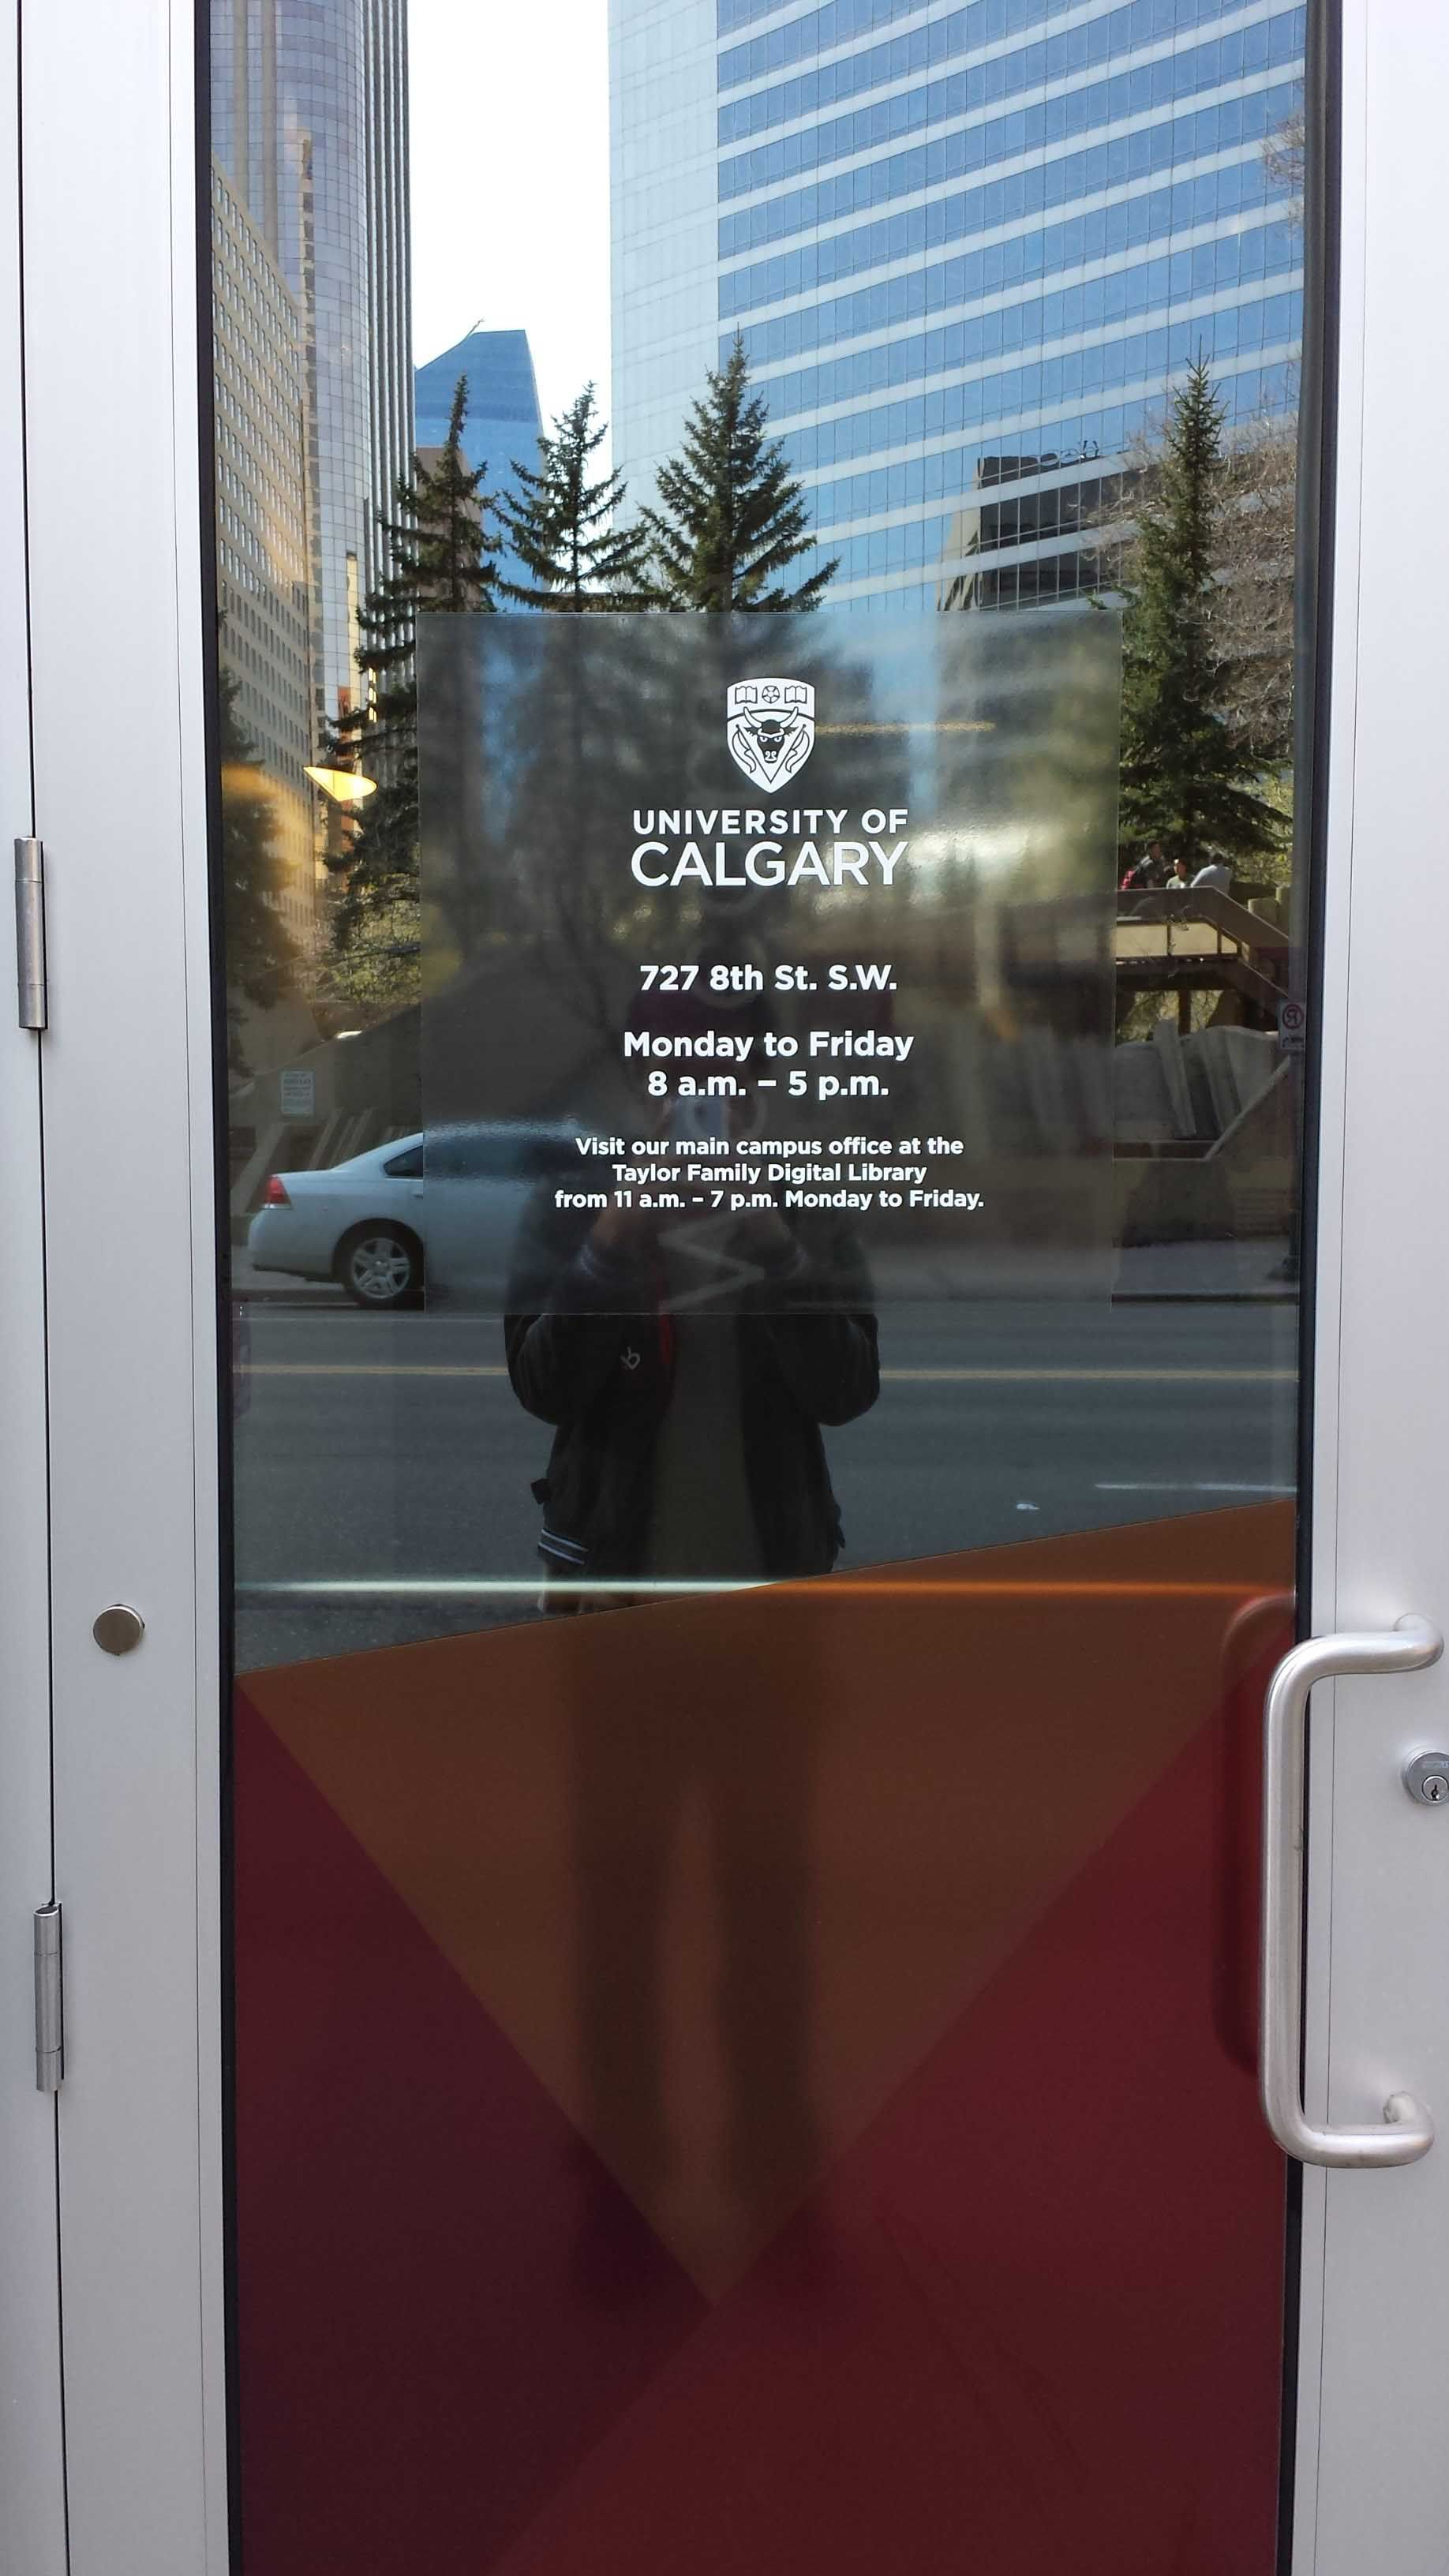 Adhesive Vinyl On A Glass Door At The University Of Calgary The